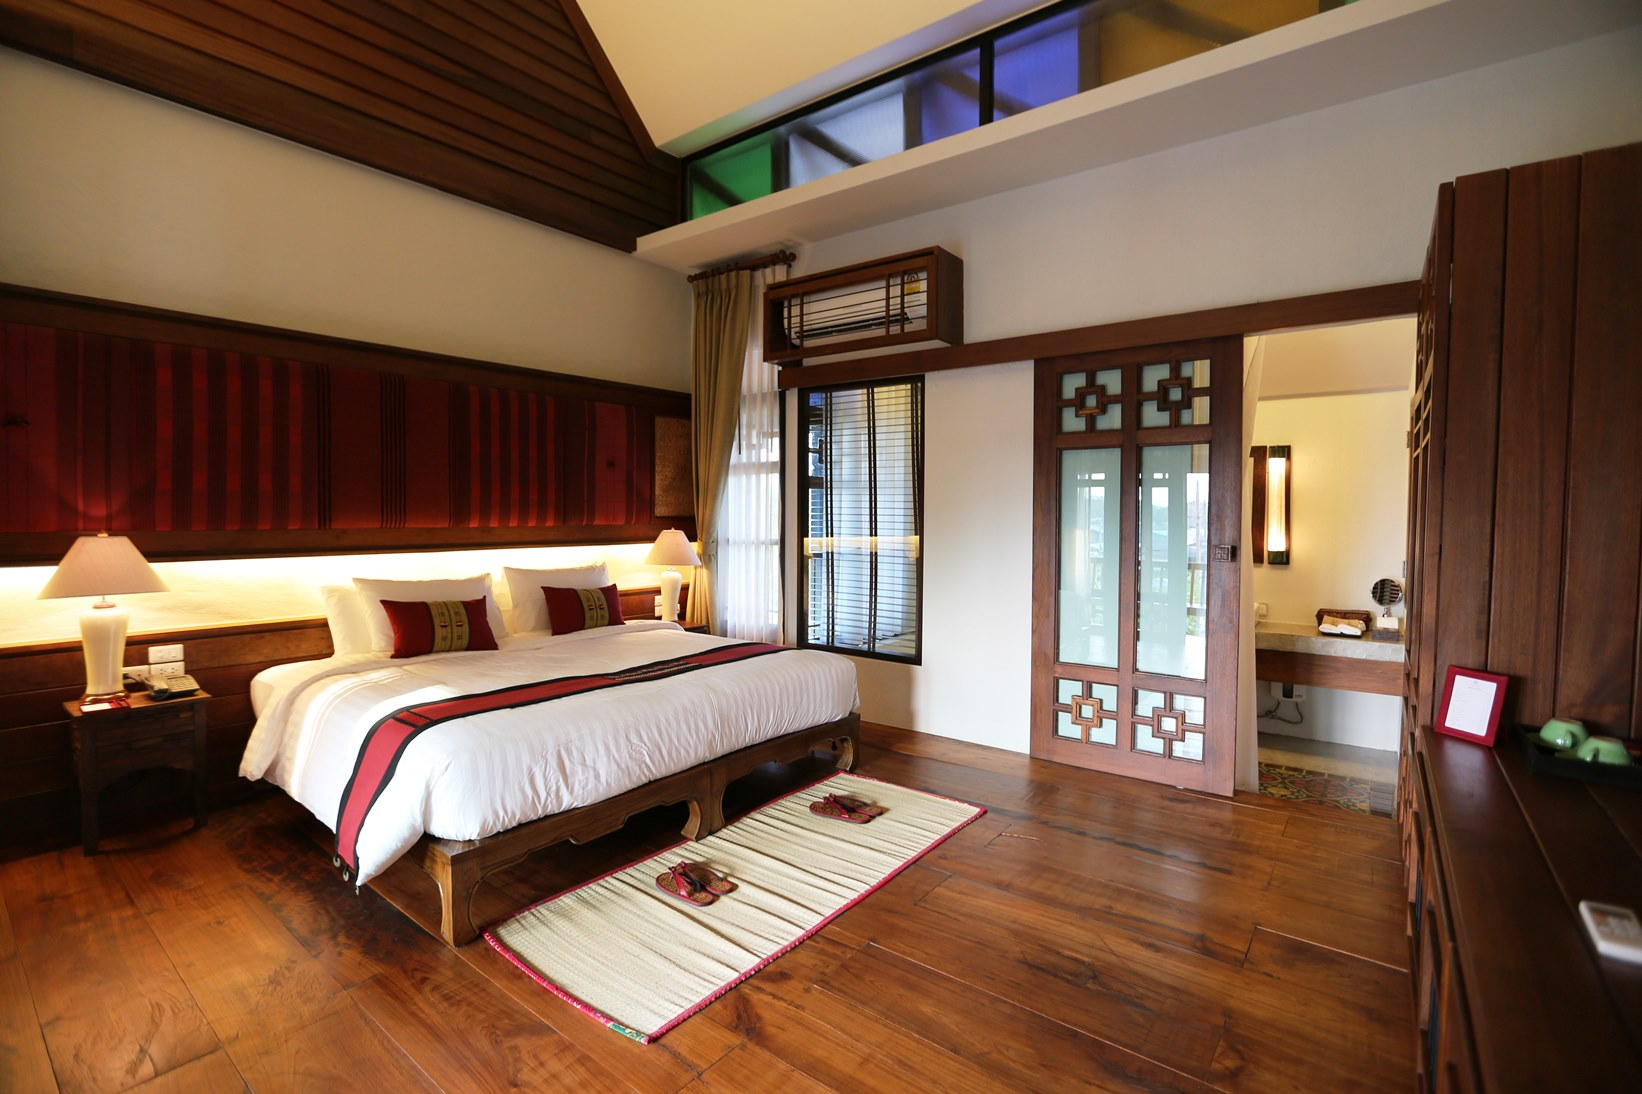 chiang mai chat rooms Mo rooms in chiang mai on hotelscom and earn rewards nights collect 10 nights get 1 free read 23 genuine guest reviews for mo rooms.